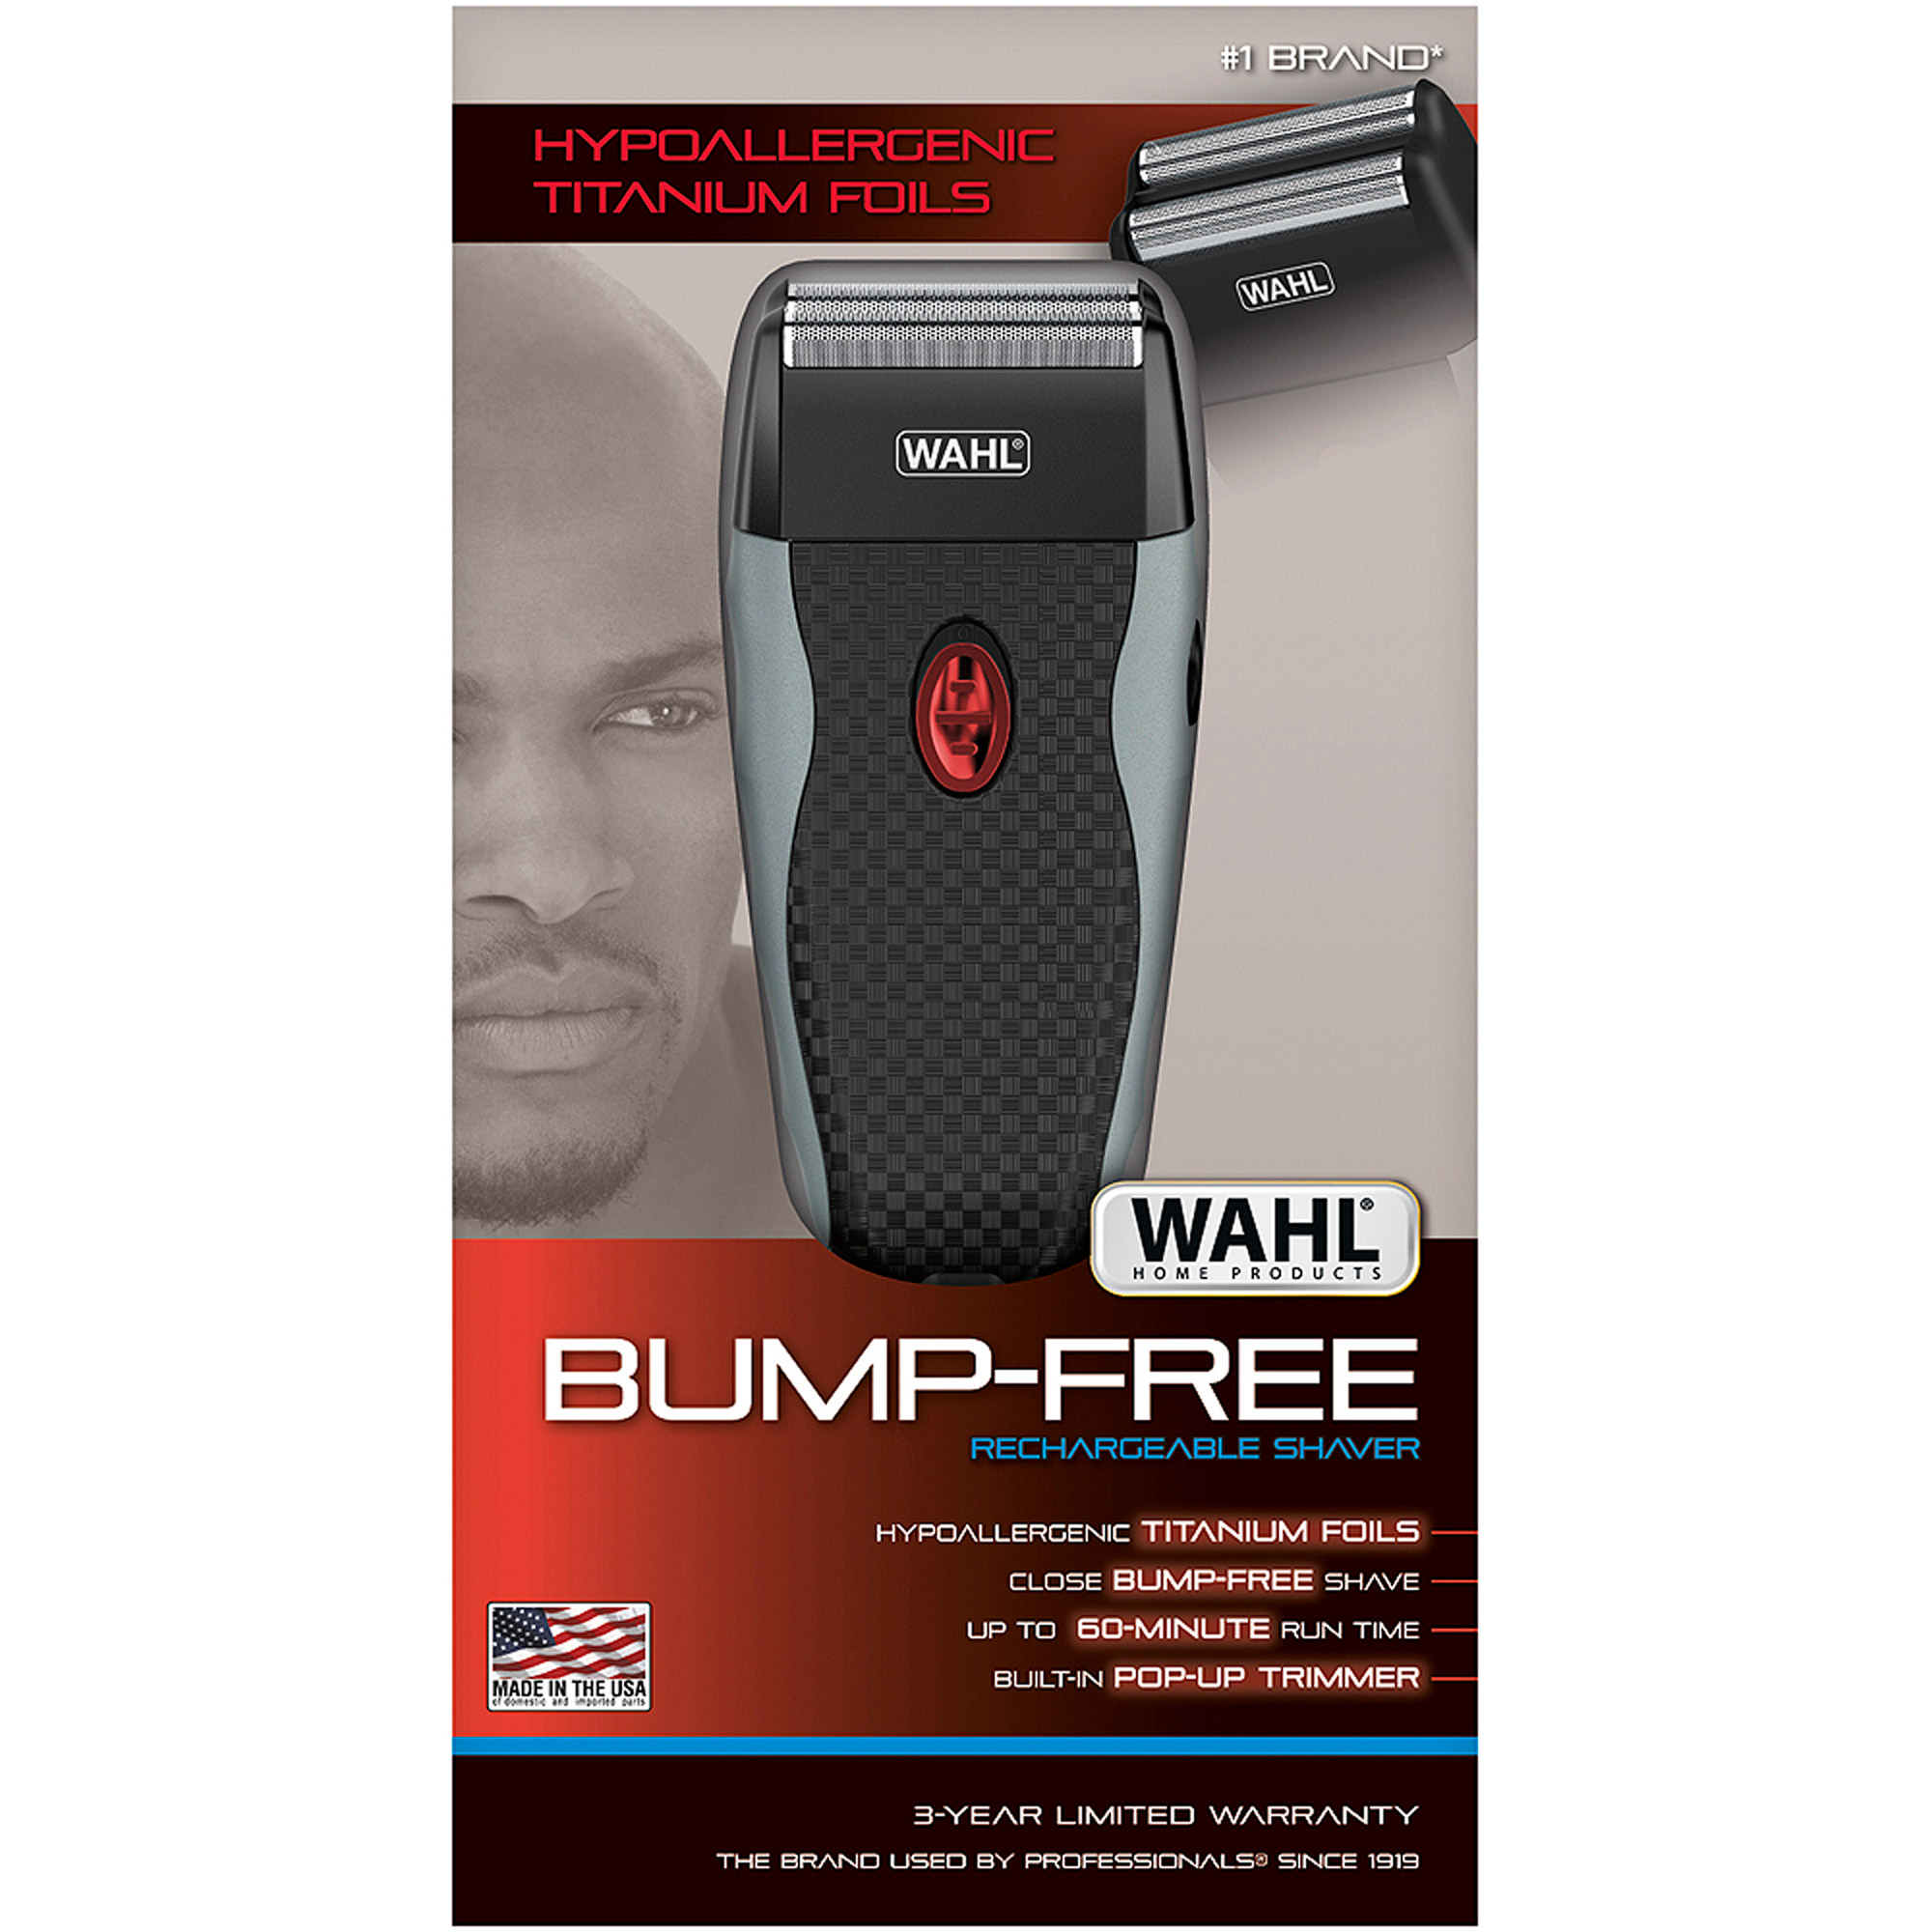 Wahl Bump-Free Rechargeable Shaver, Model 7339, 7 pc